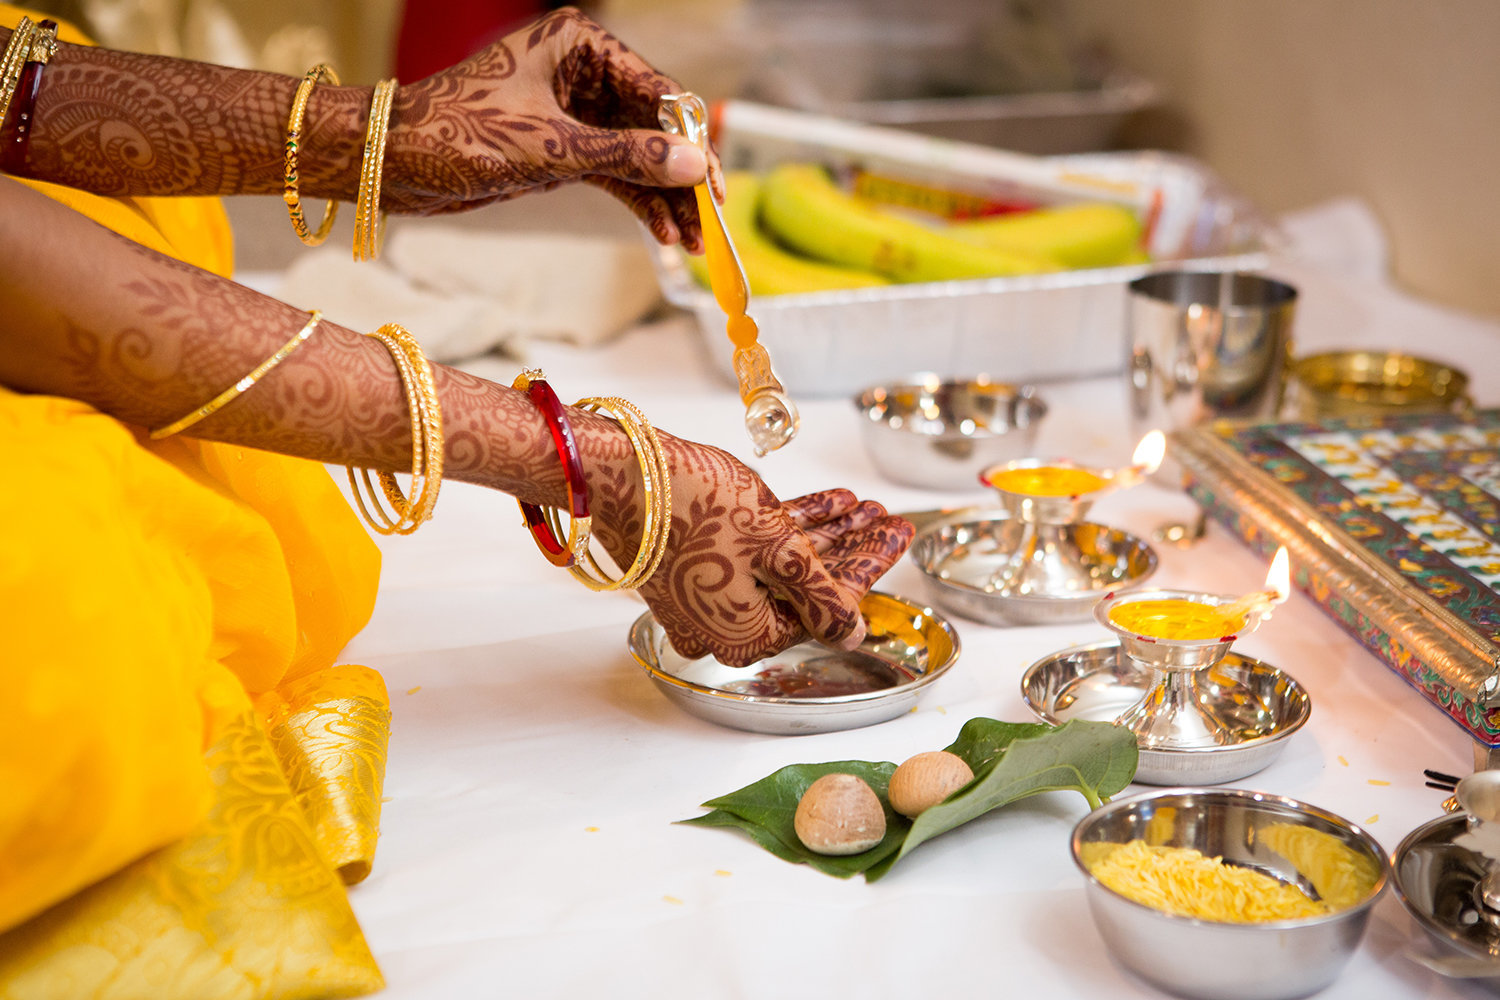 Close up of a Hindu Indian bride's hands during a wedding ceremony